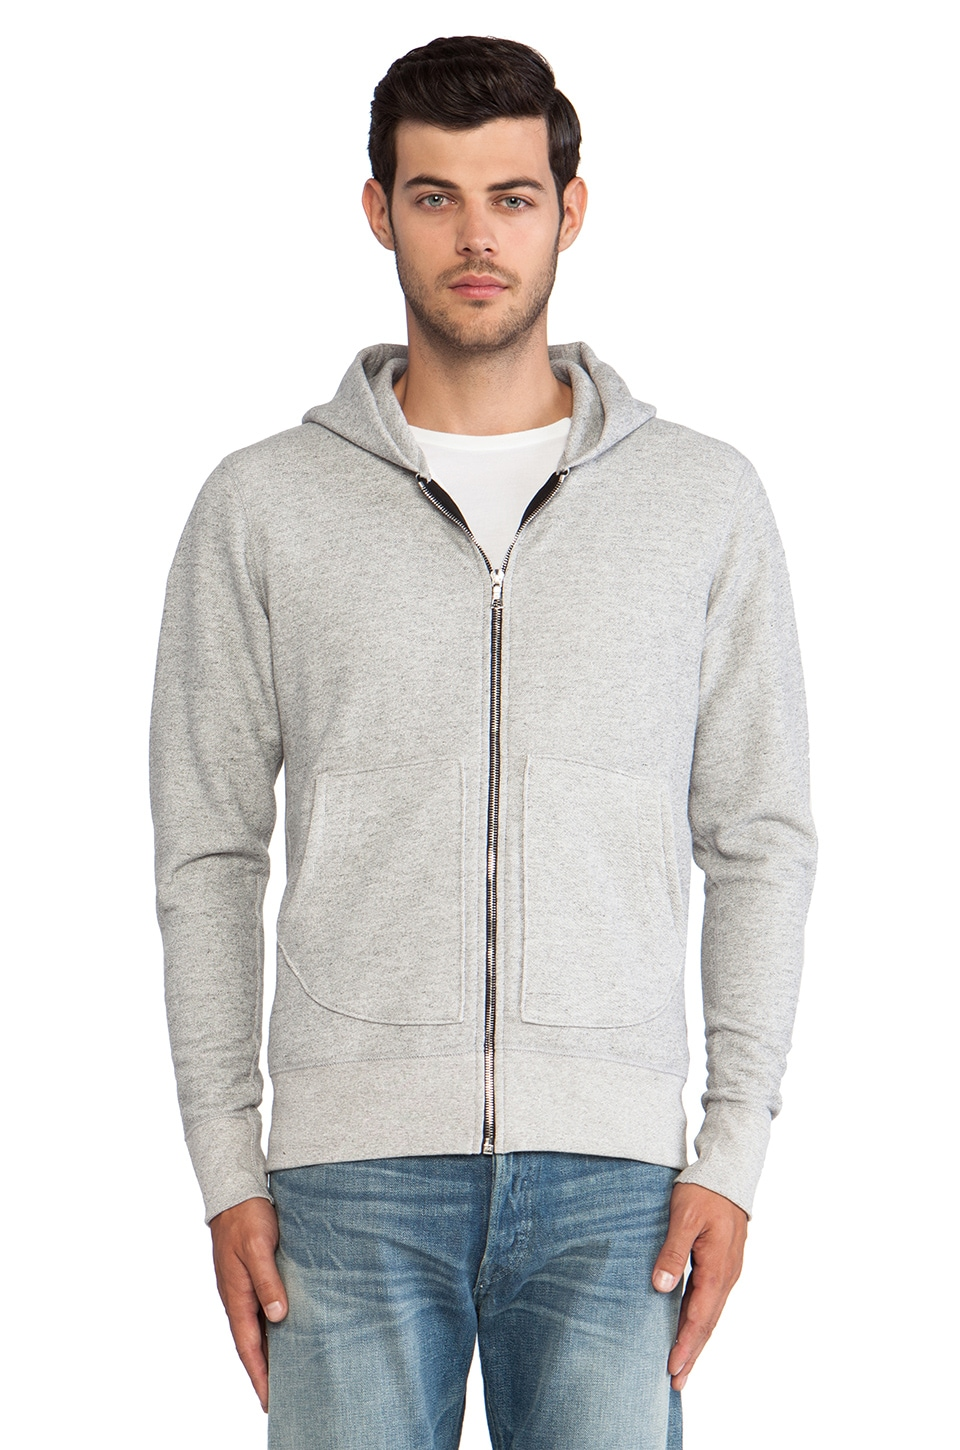 JOHN ELLIOTT Flash Full Zip Hoodie in Grey